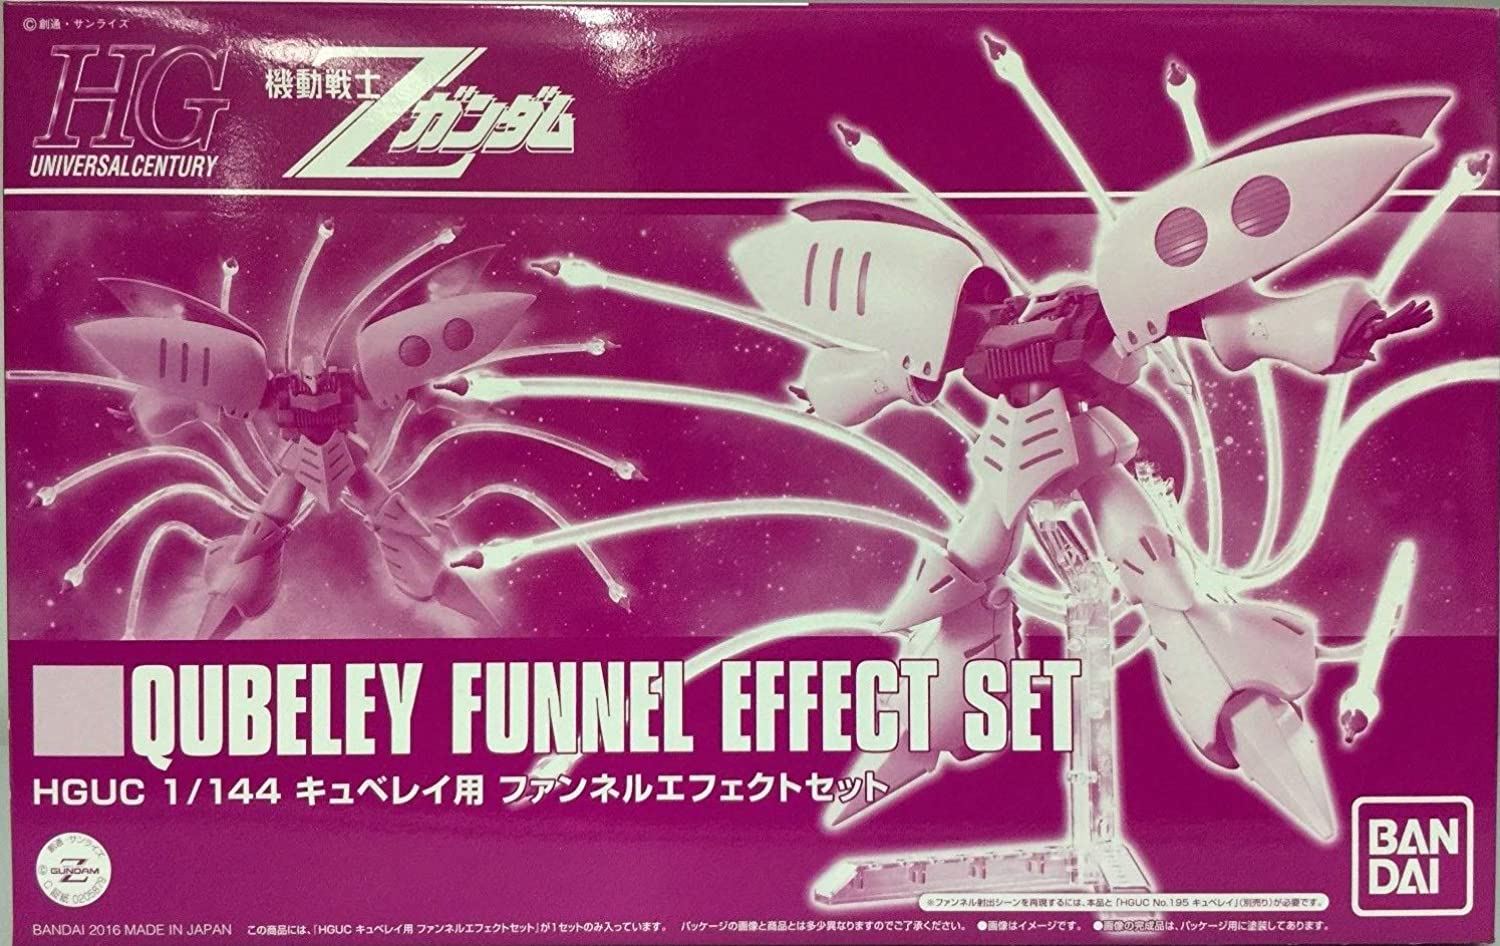 HGUC QUBELEY FUNNEL EFFECT SET by HGUC